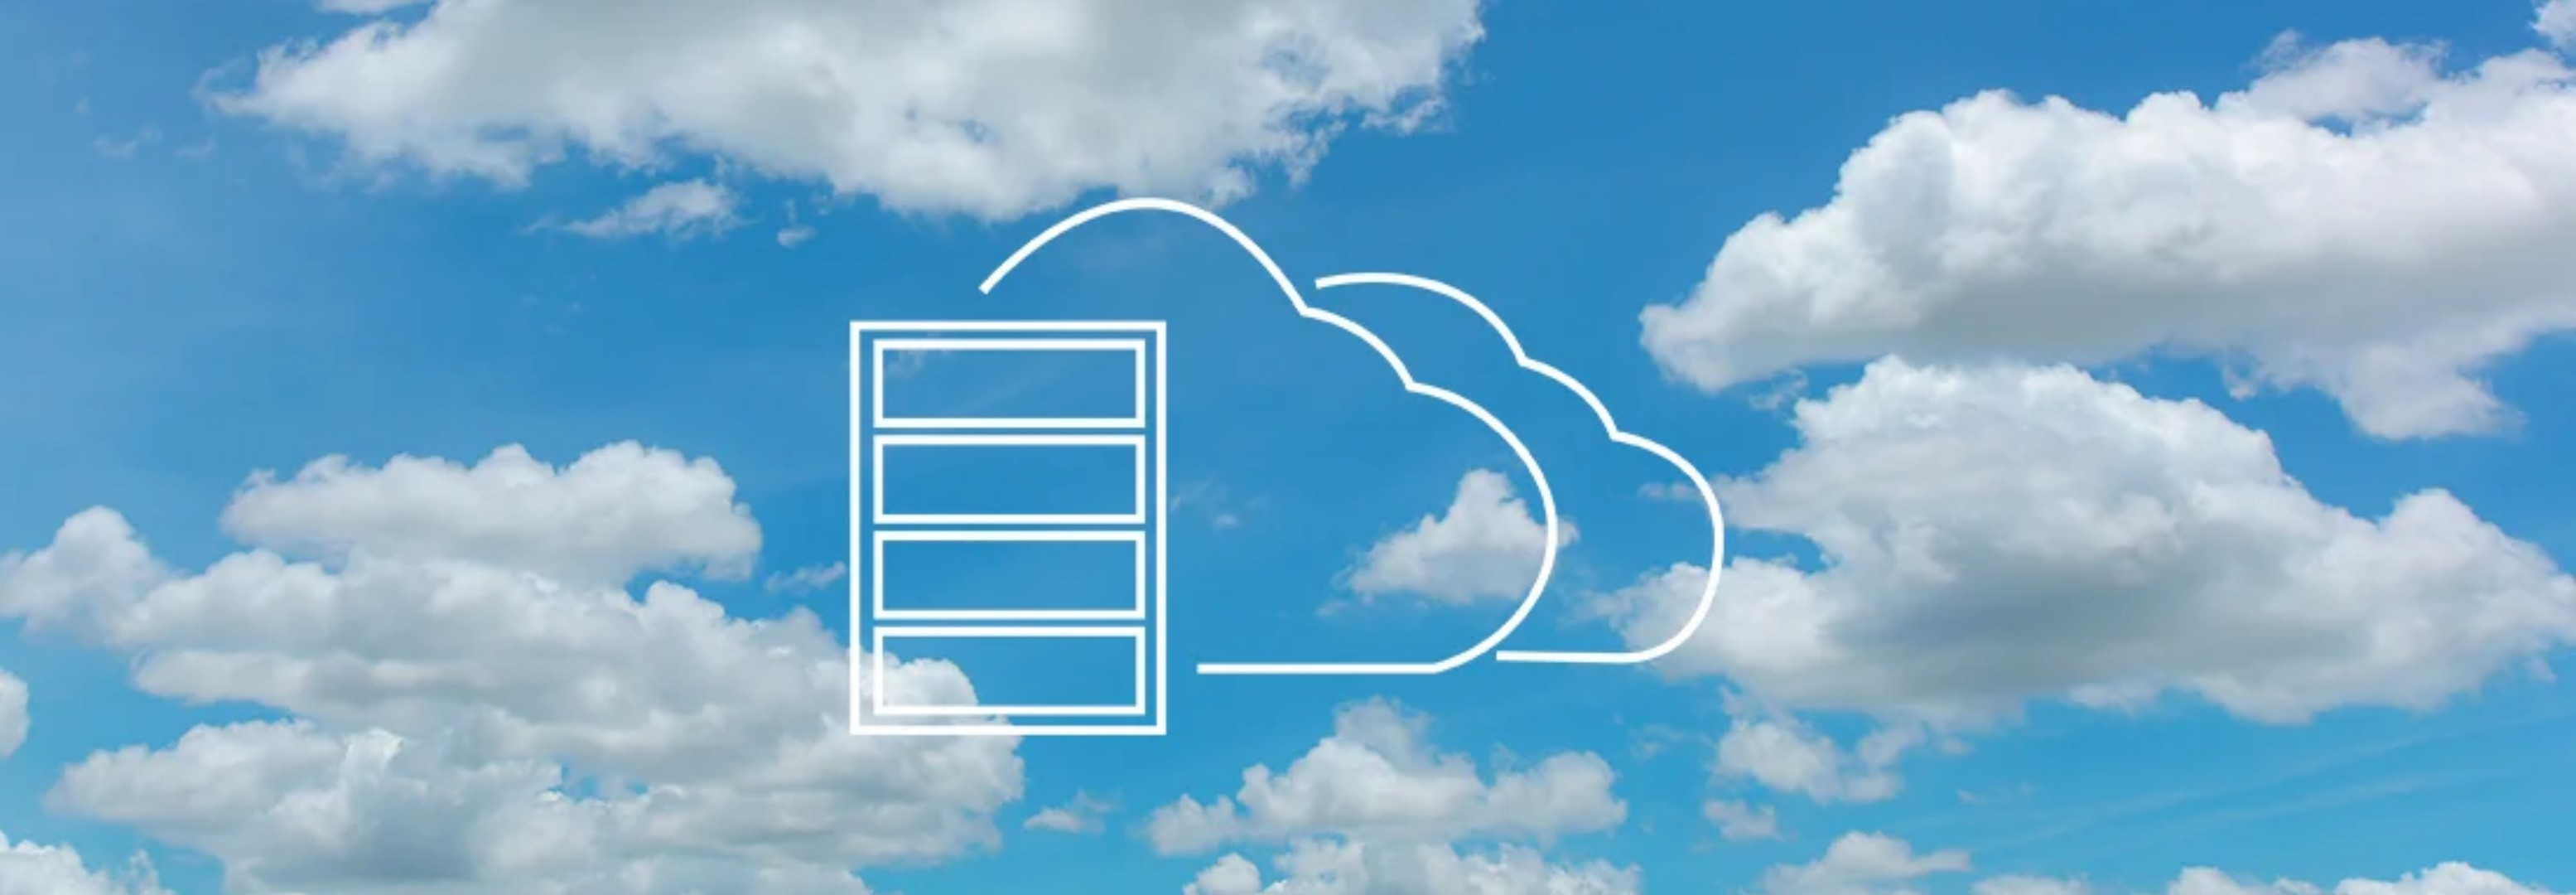 Cloudy sky with icon of a cloud server in the foreground